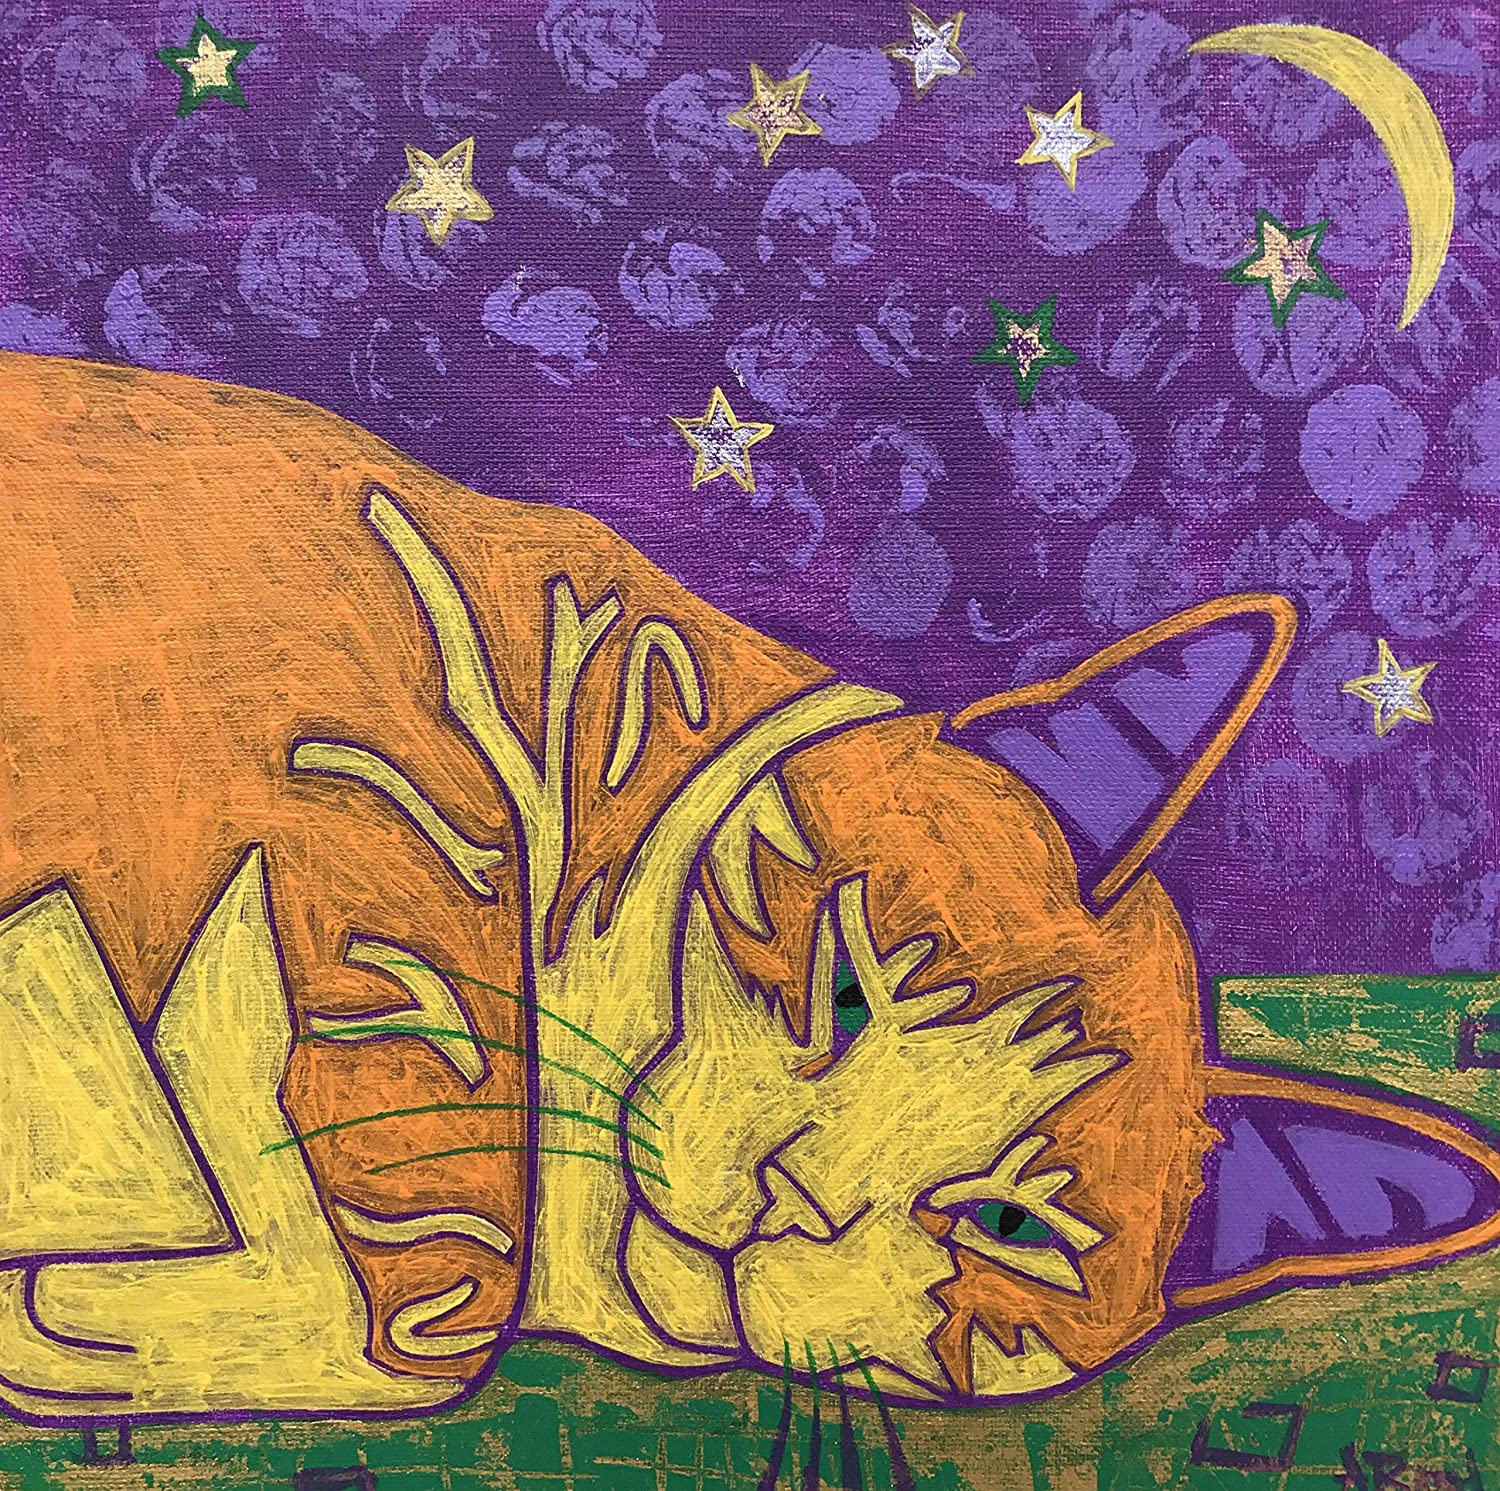 Napping Tabby Tile Coaster, Cat Lover Collectible Home Decor by Angela Bond